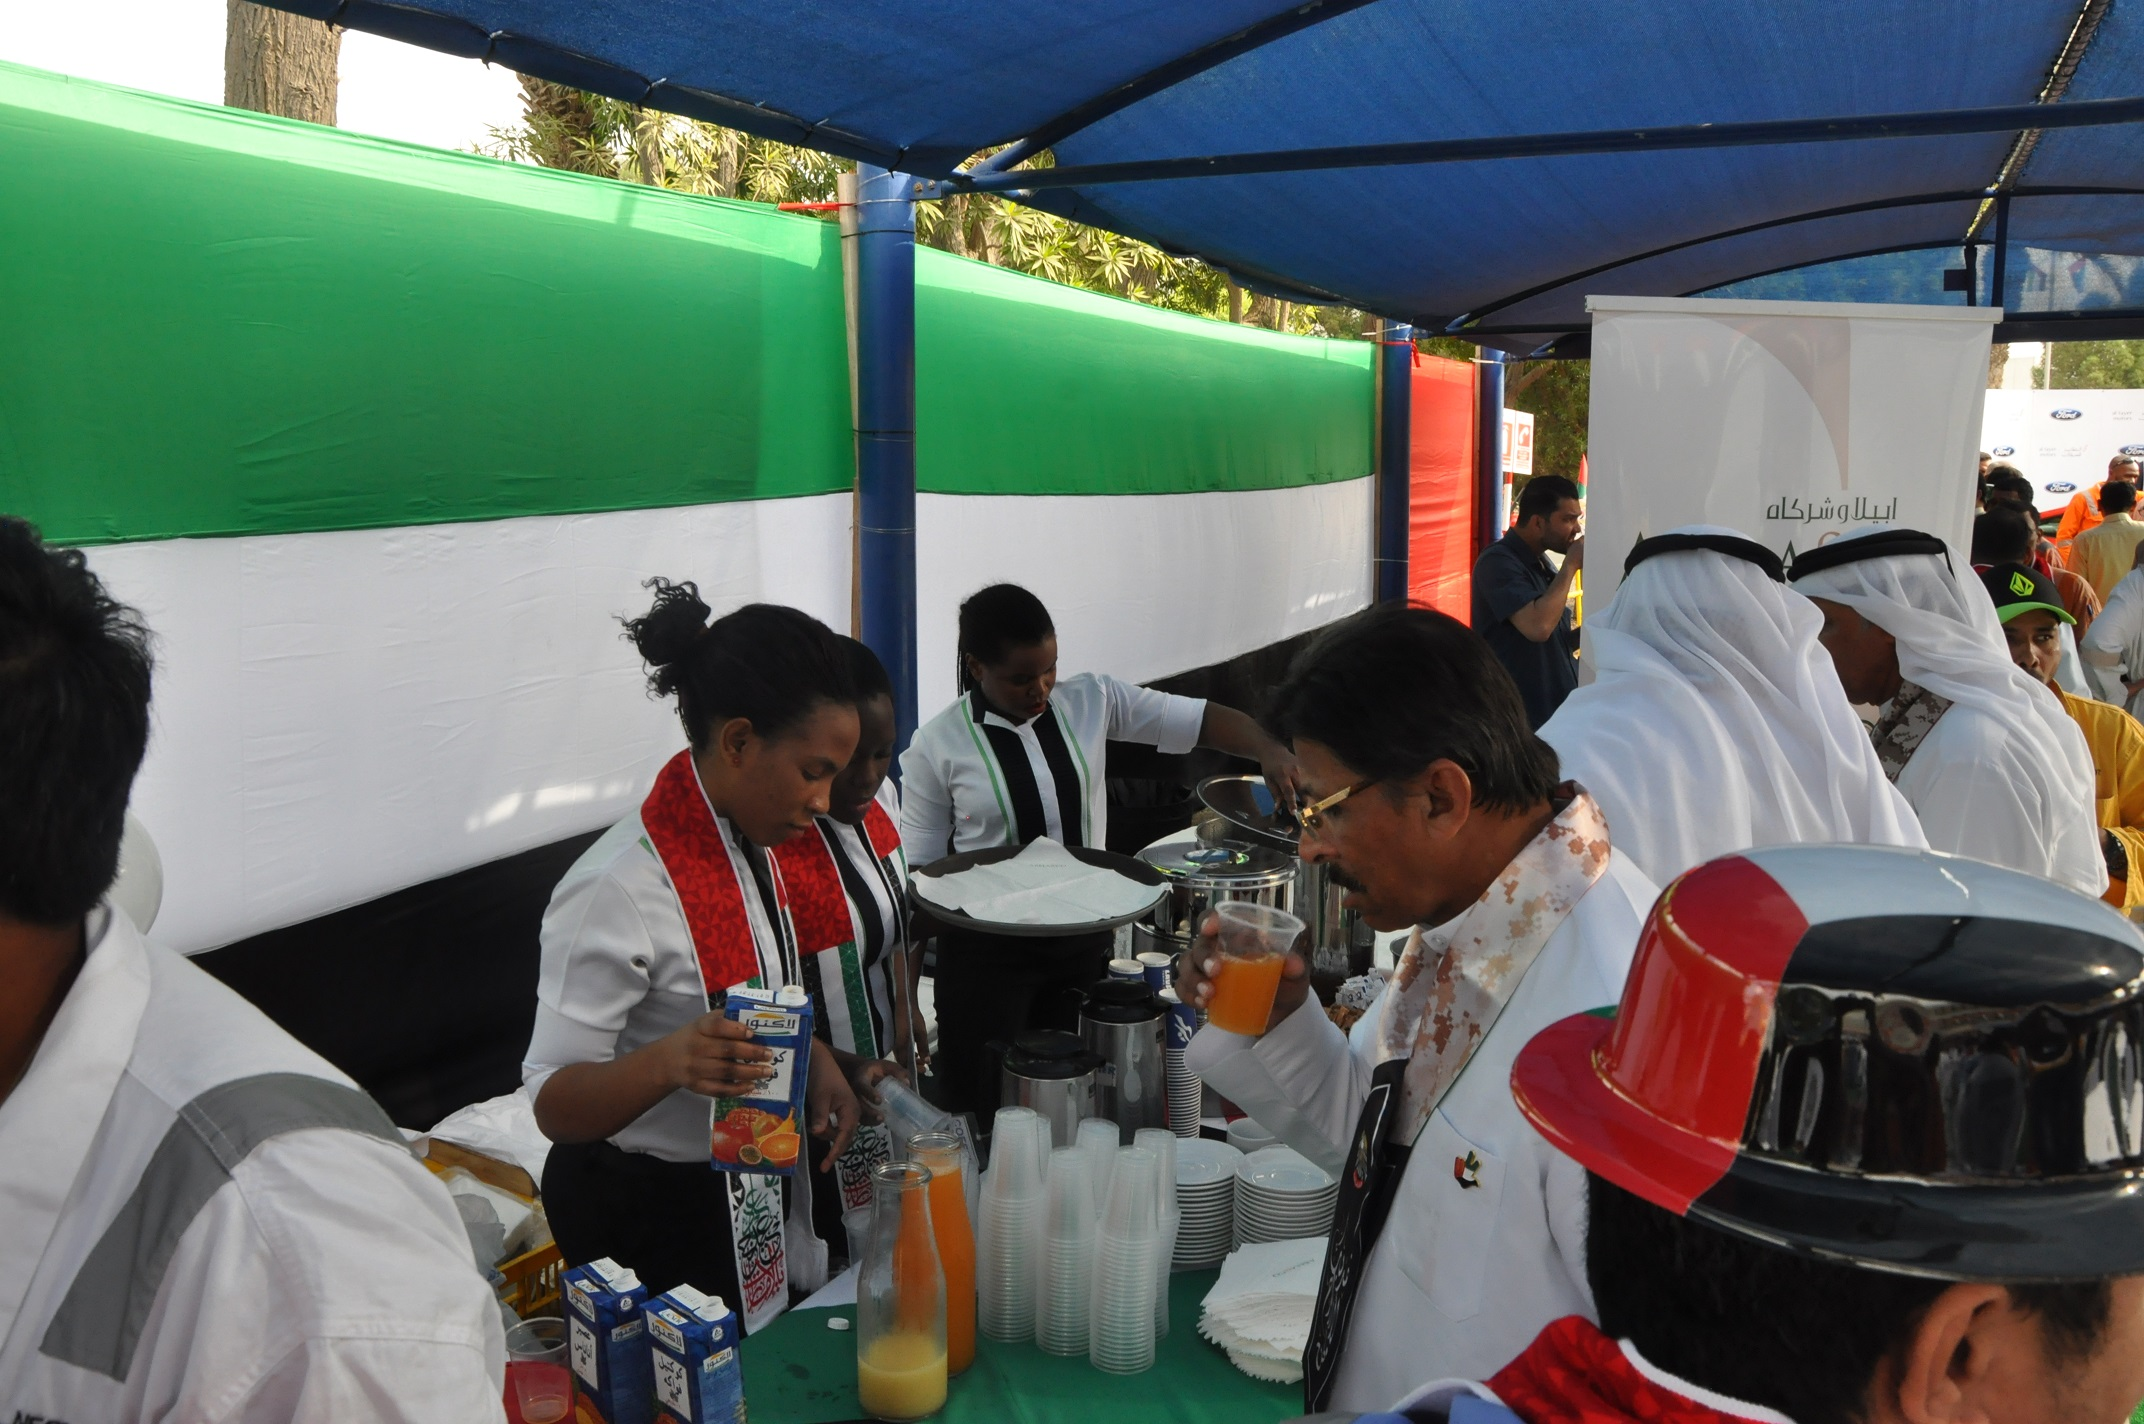 Abela co supportes 45th national day celebration at dry docks chairman of drydock world furthermore abela cos nutrition department provided their support at the event by conducting interactive quiz games on gumiabroncs Gallery